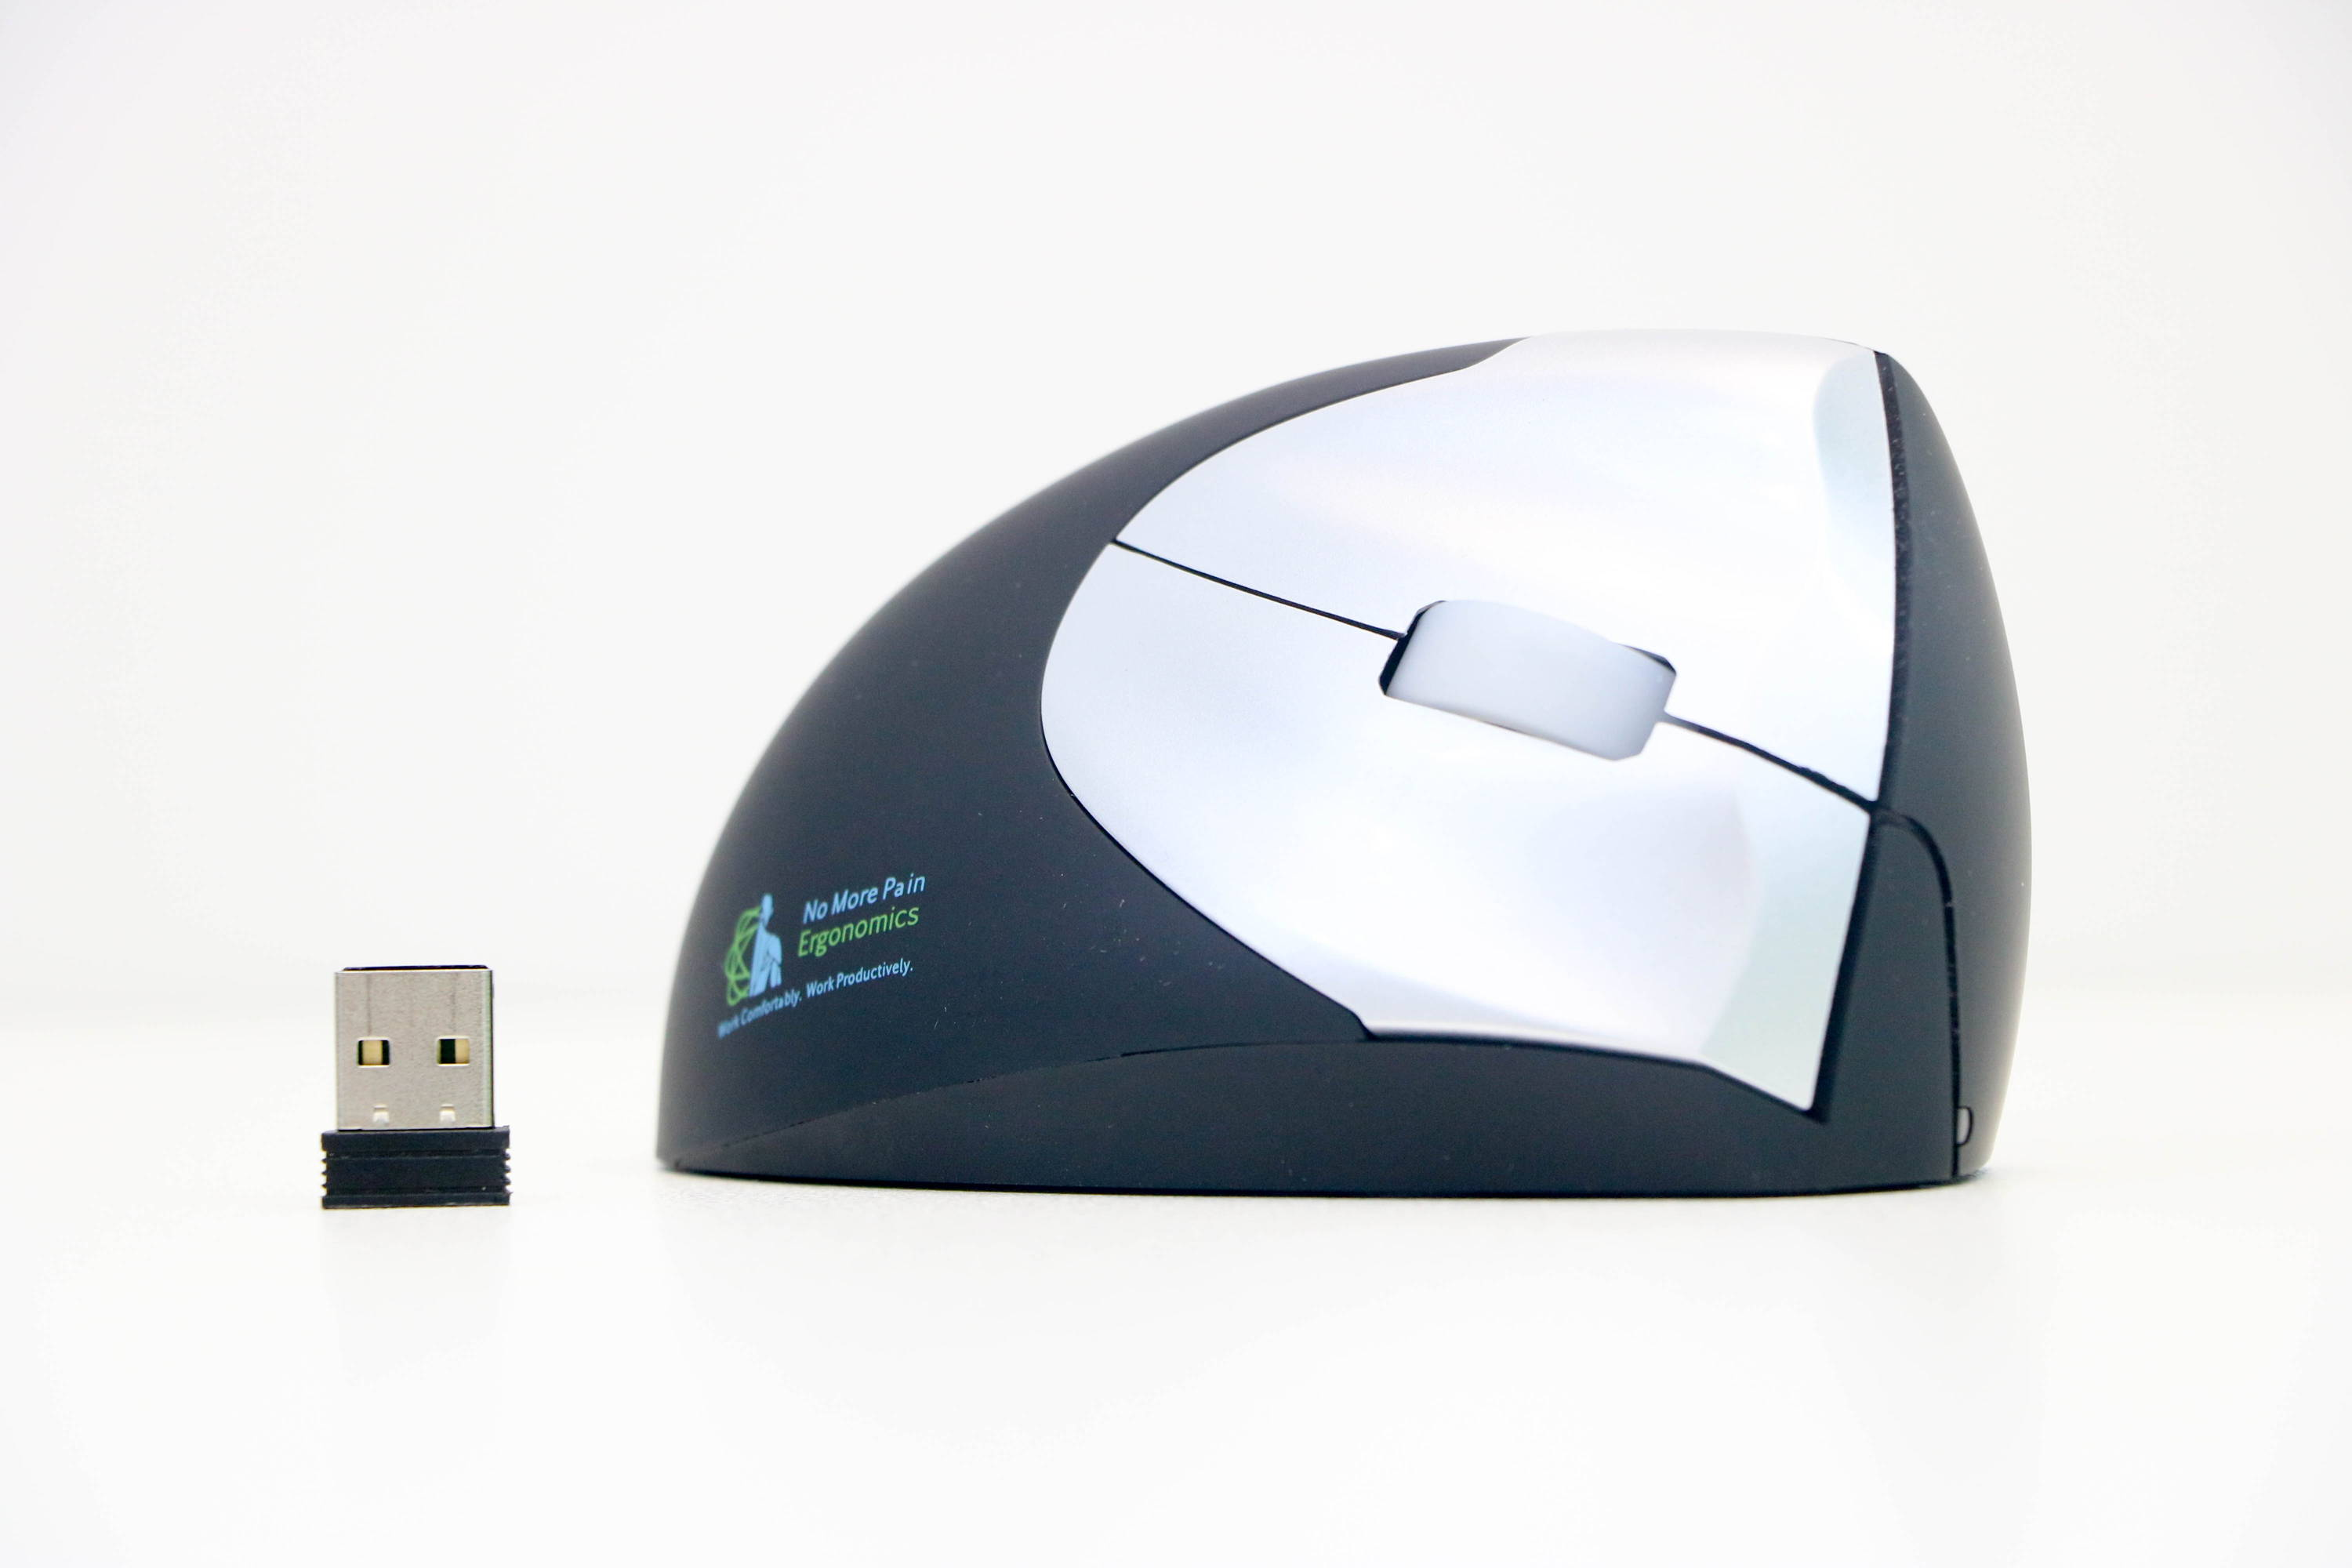 Ergonomic mouse for carpal tunnel syndrome